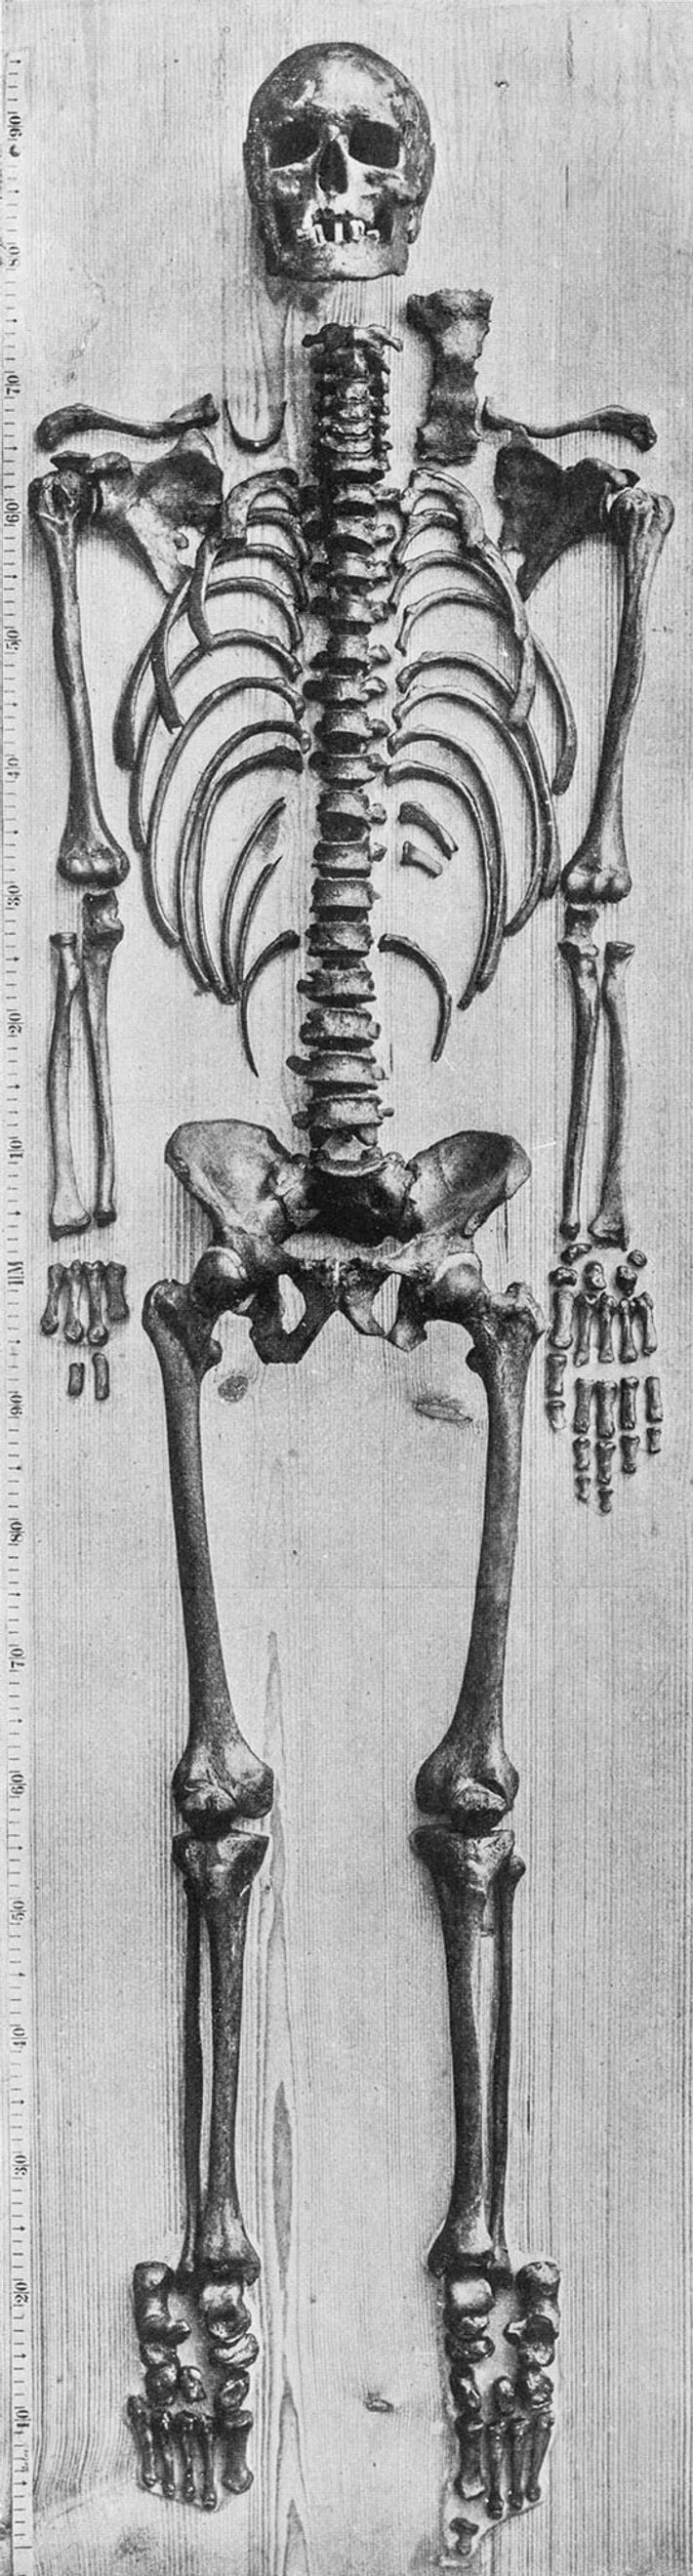 What's believed to be Bach's skeleton, photographed in 1895 by anatomist Wilhelm His. Andreas Otte examined ...